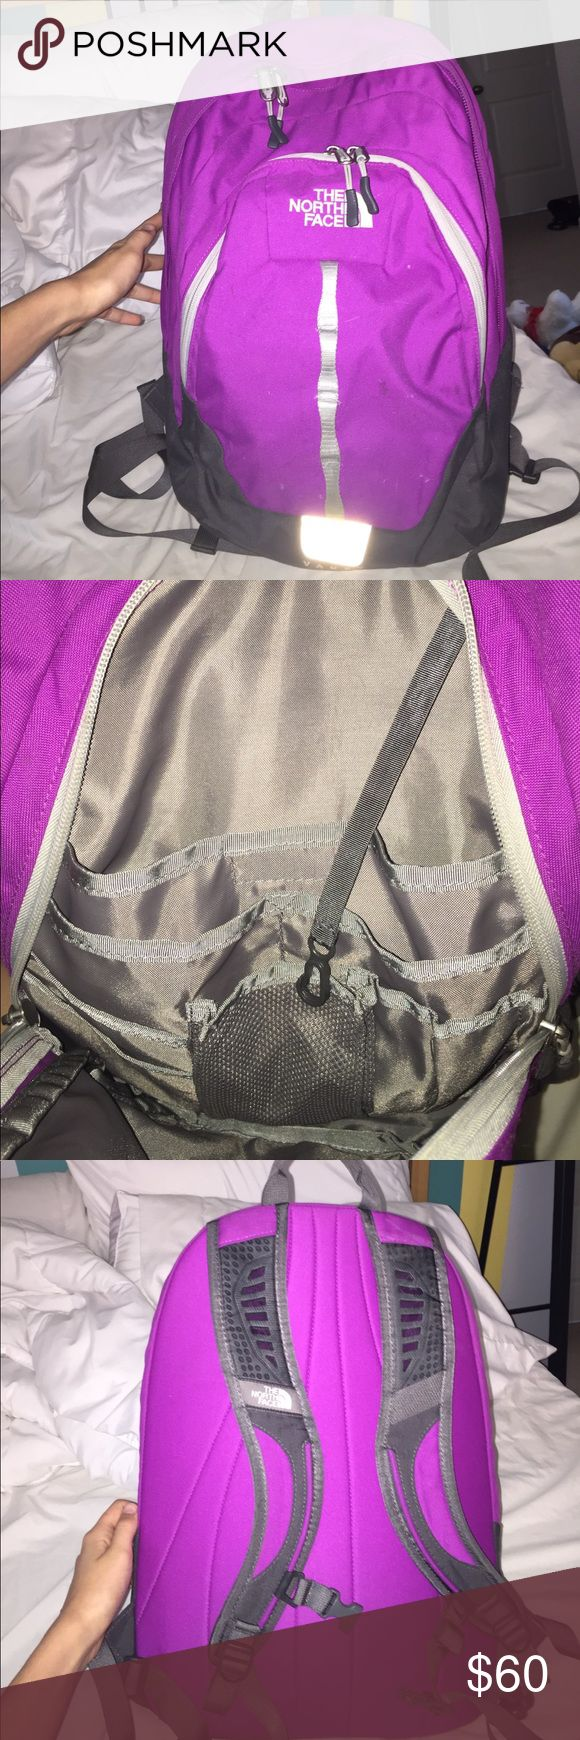 north face backpack Purple color, barely used, in amazing condition! Really need to get rid of this! Has a very cushioned back so great for a laptop and great on your back! Feel free to use the offer button The North Face Bags Backpacks